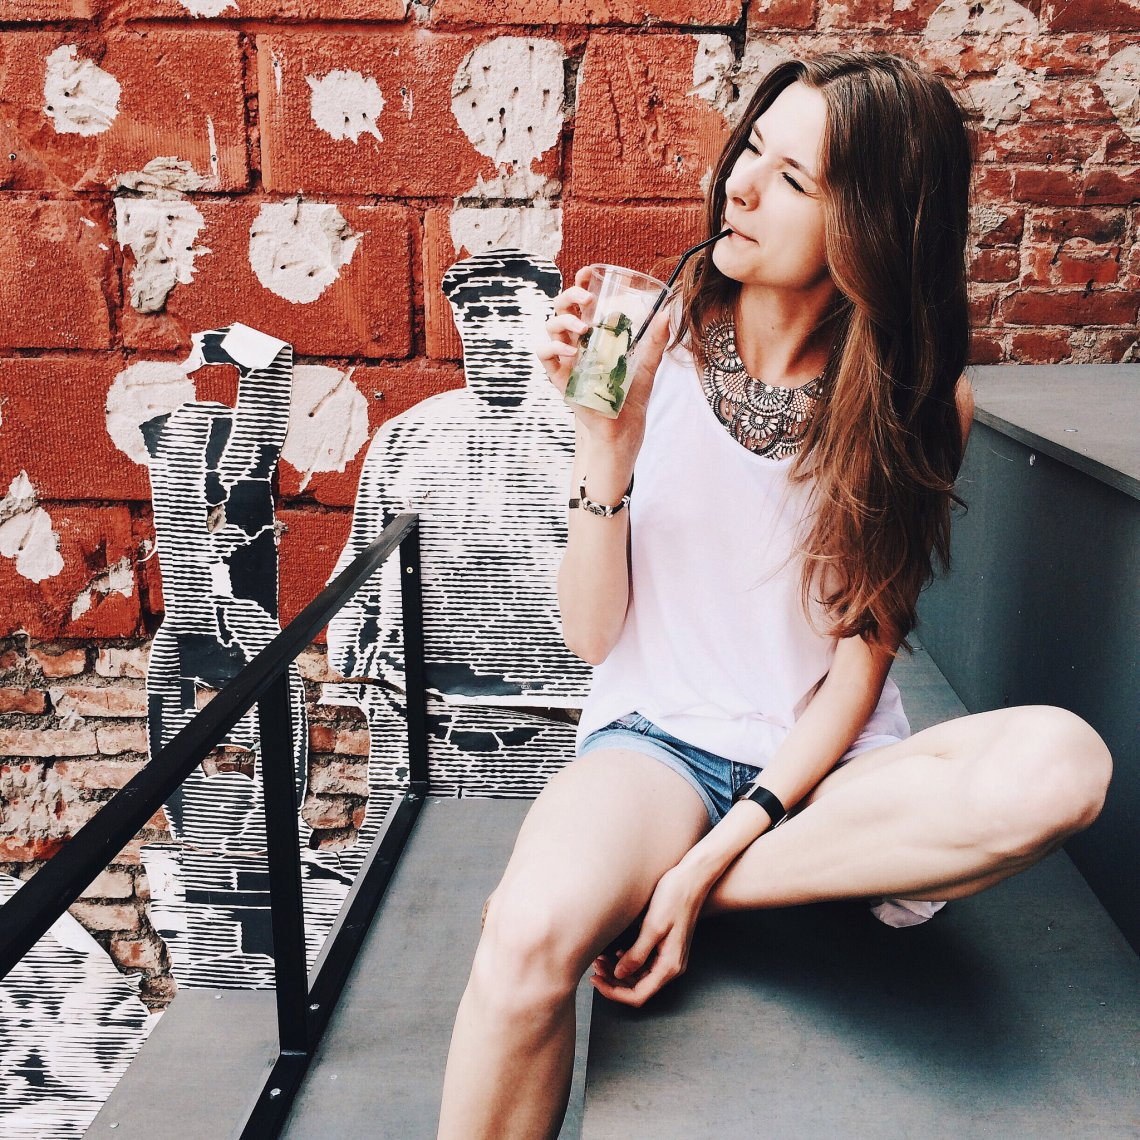 girl sipping on fruity drink relaxing by street art